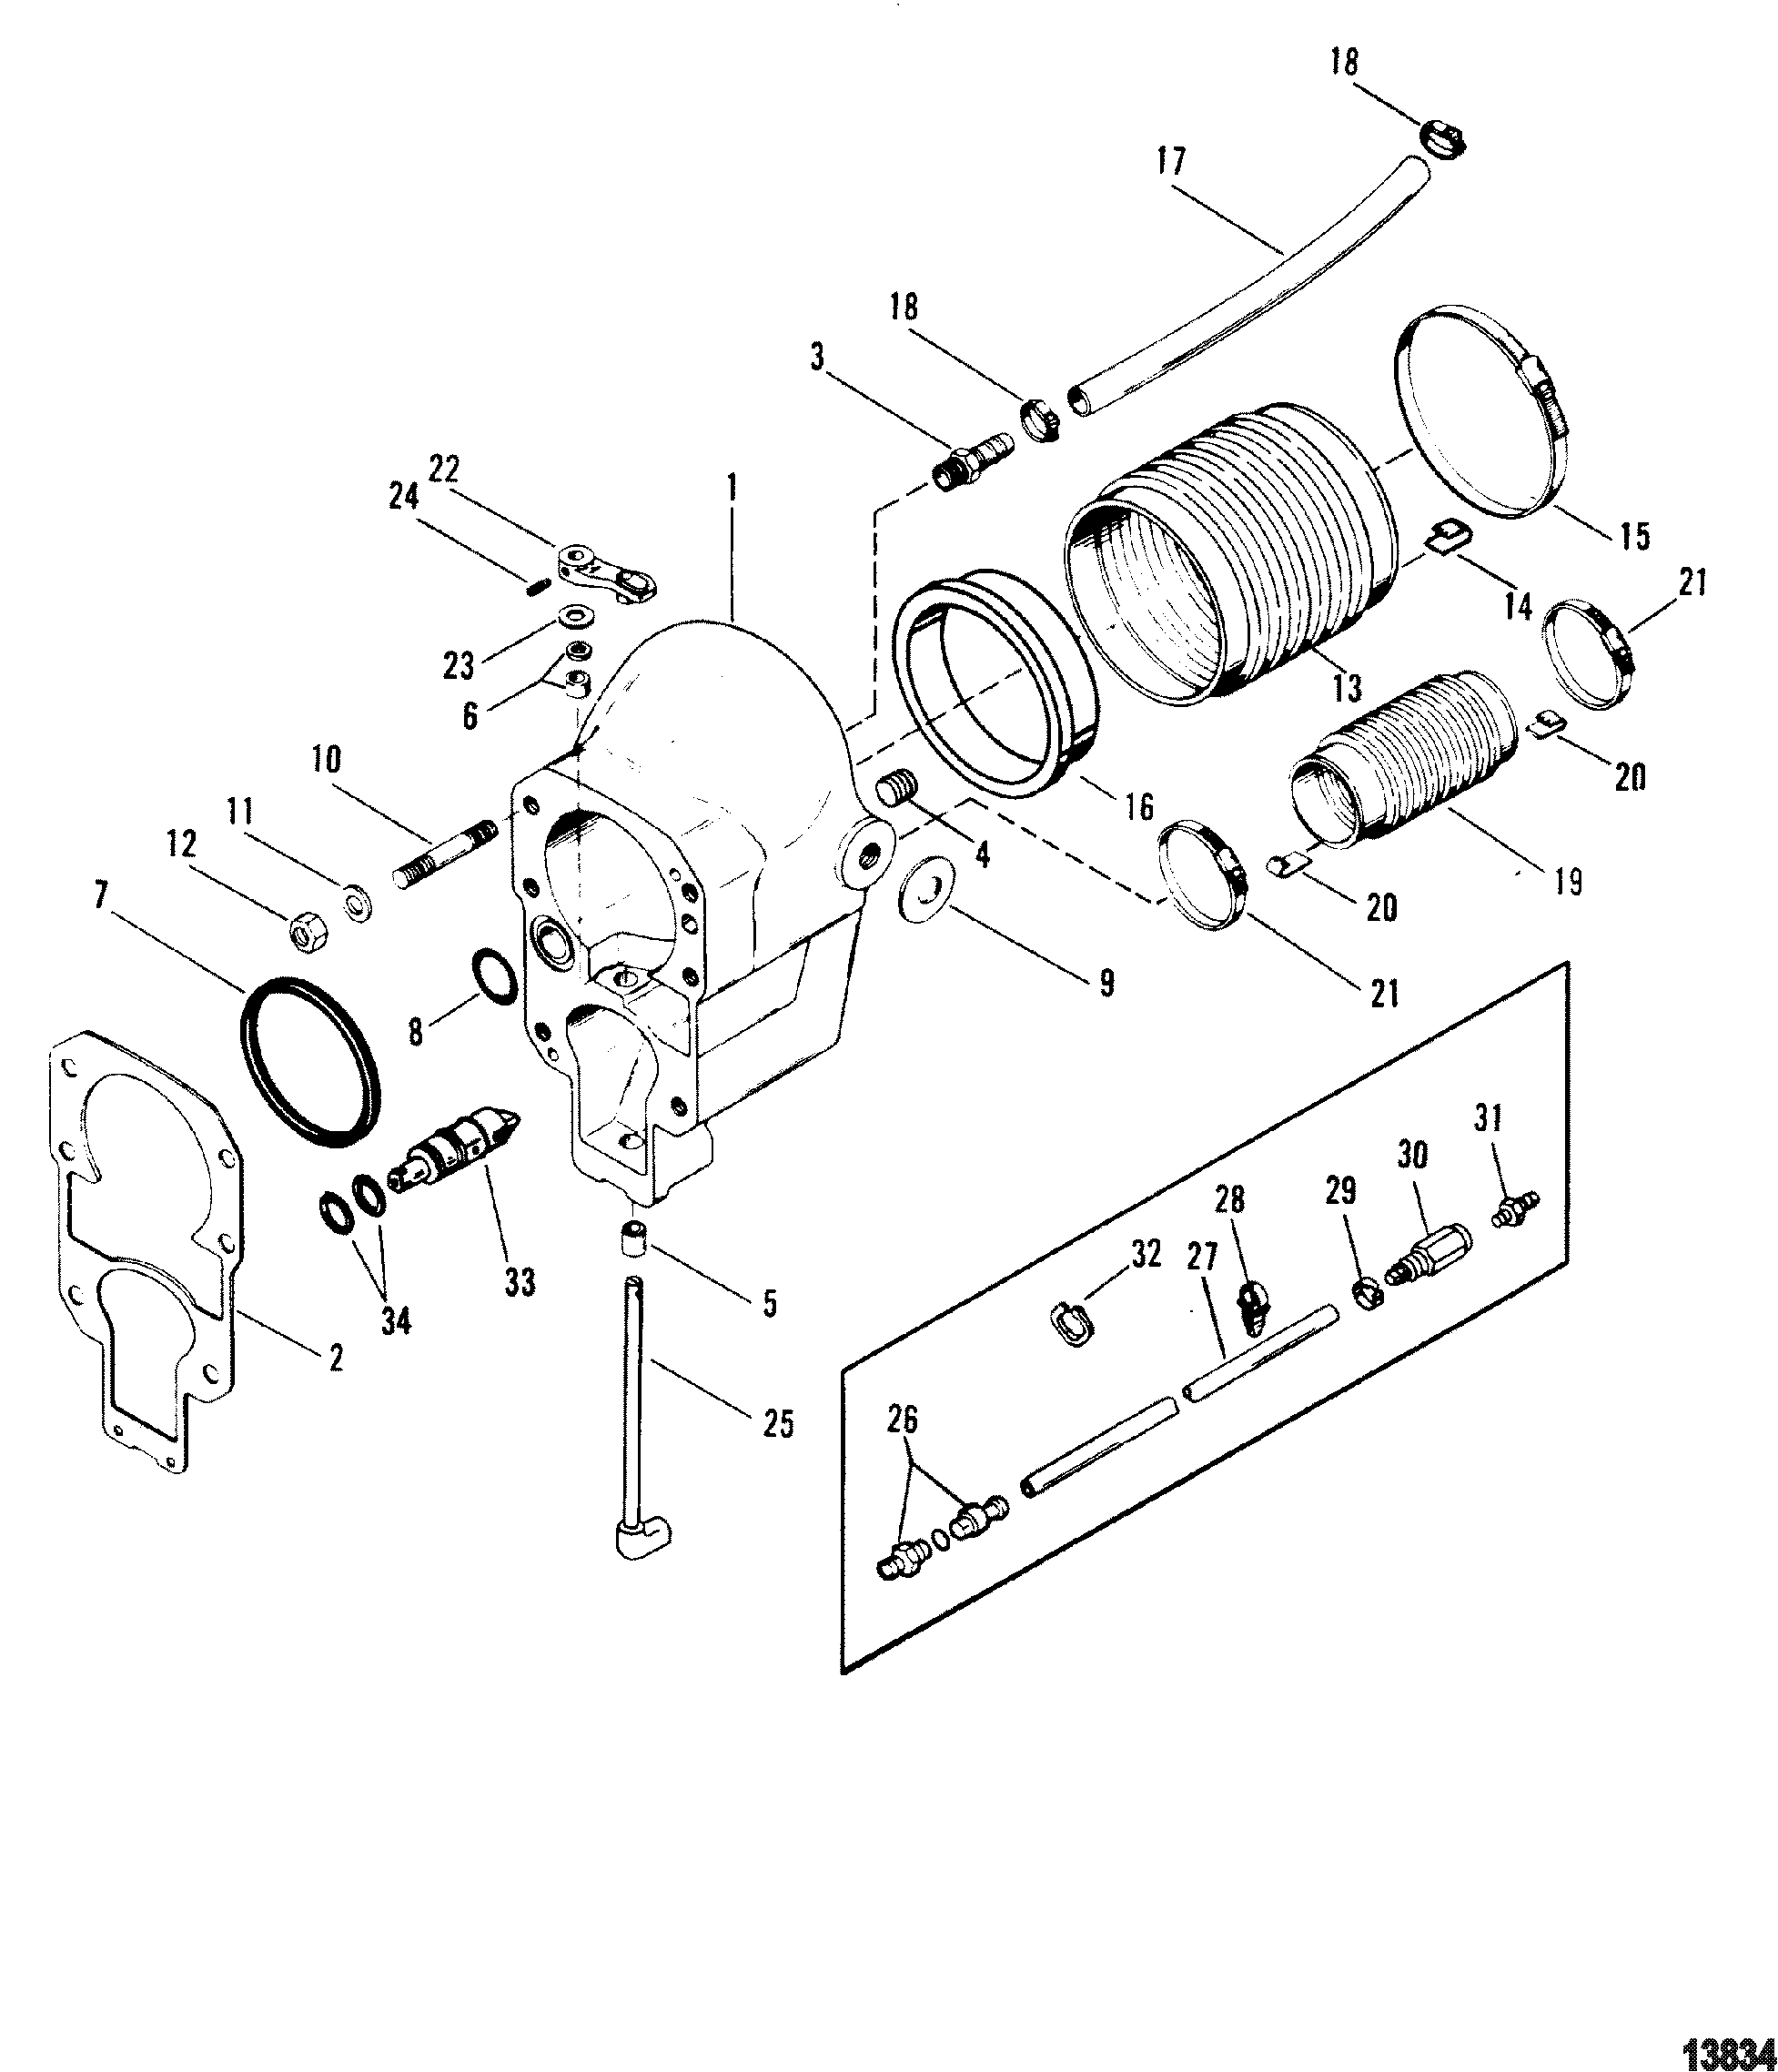 BravoService besides Mercruiser Sterndrive Parts Diagram additionally Id27 together with Mercruiser Alpha One Gen 2 Parts Diagram Fine Illustration Engine Section furthermore Parts drawing upper. on alpha one outdrive diagram